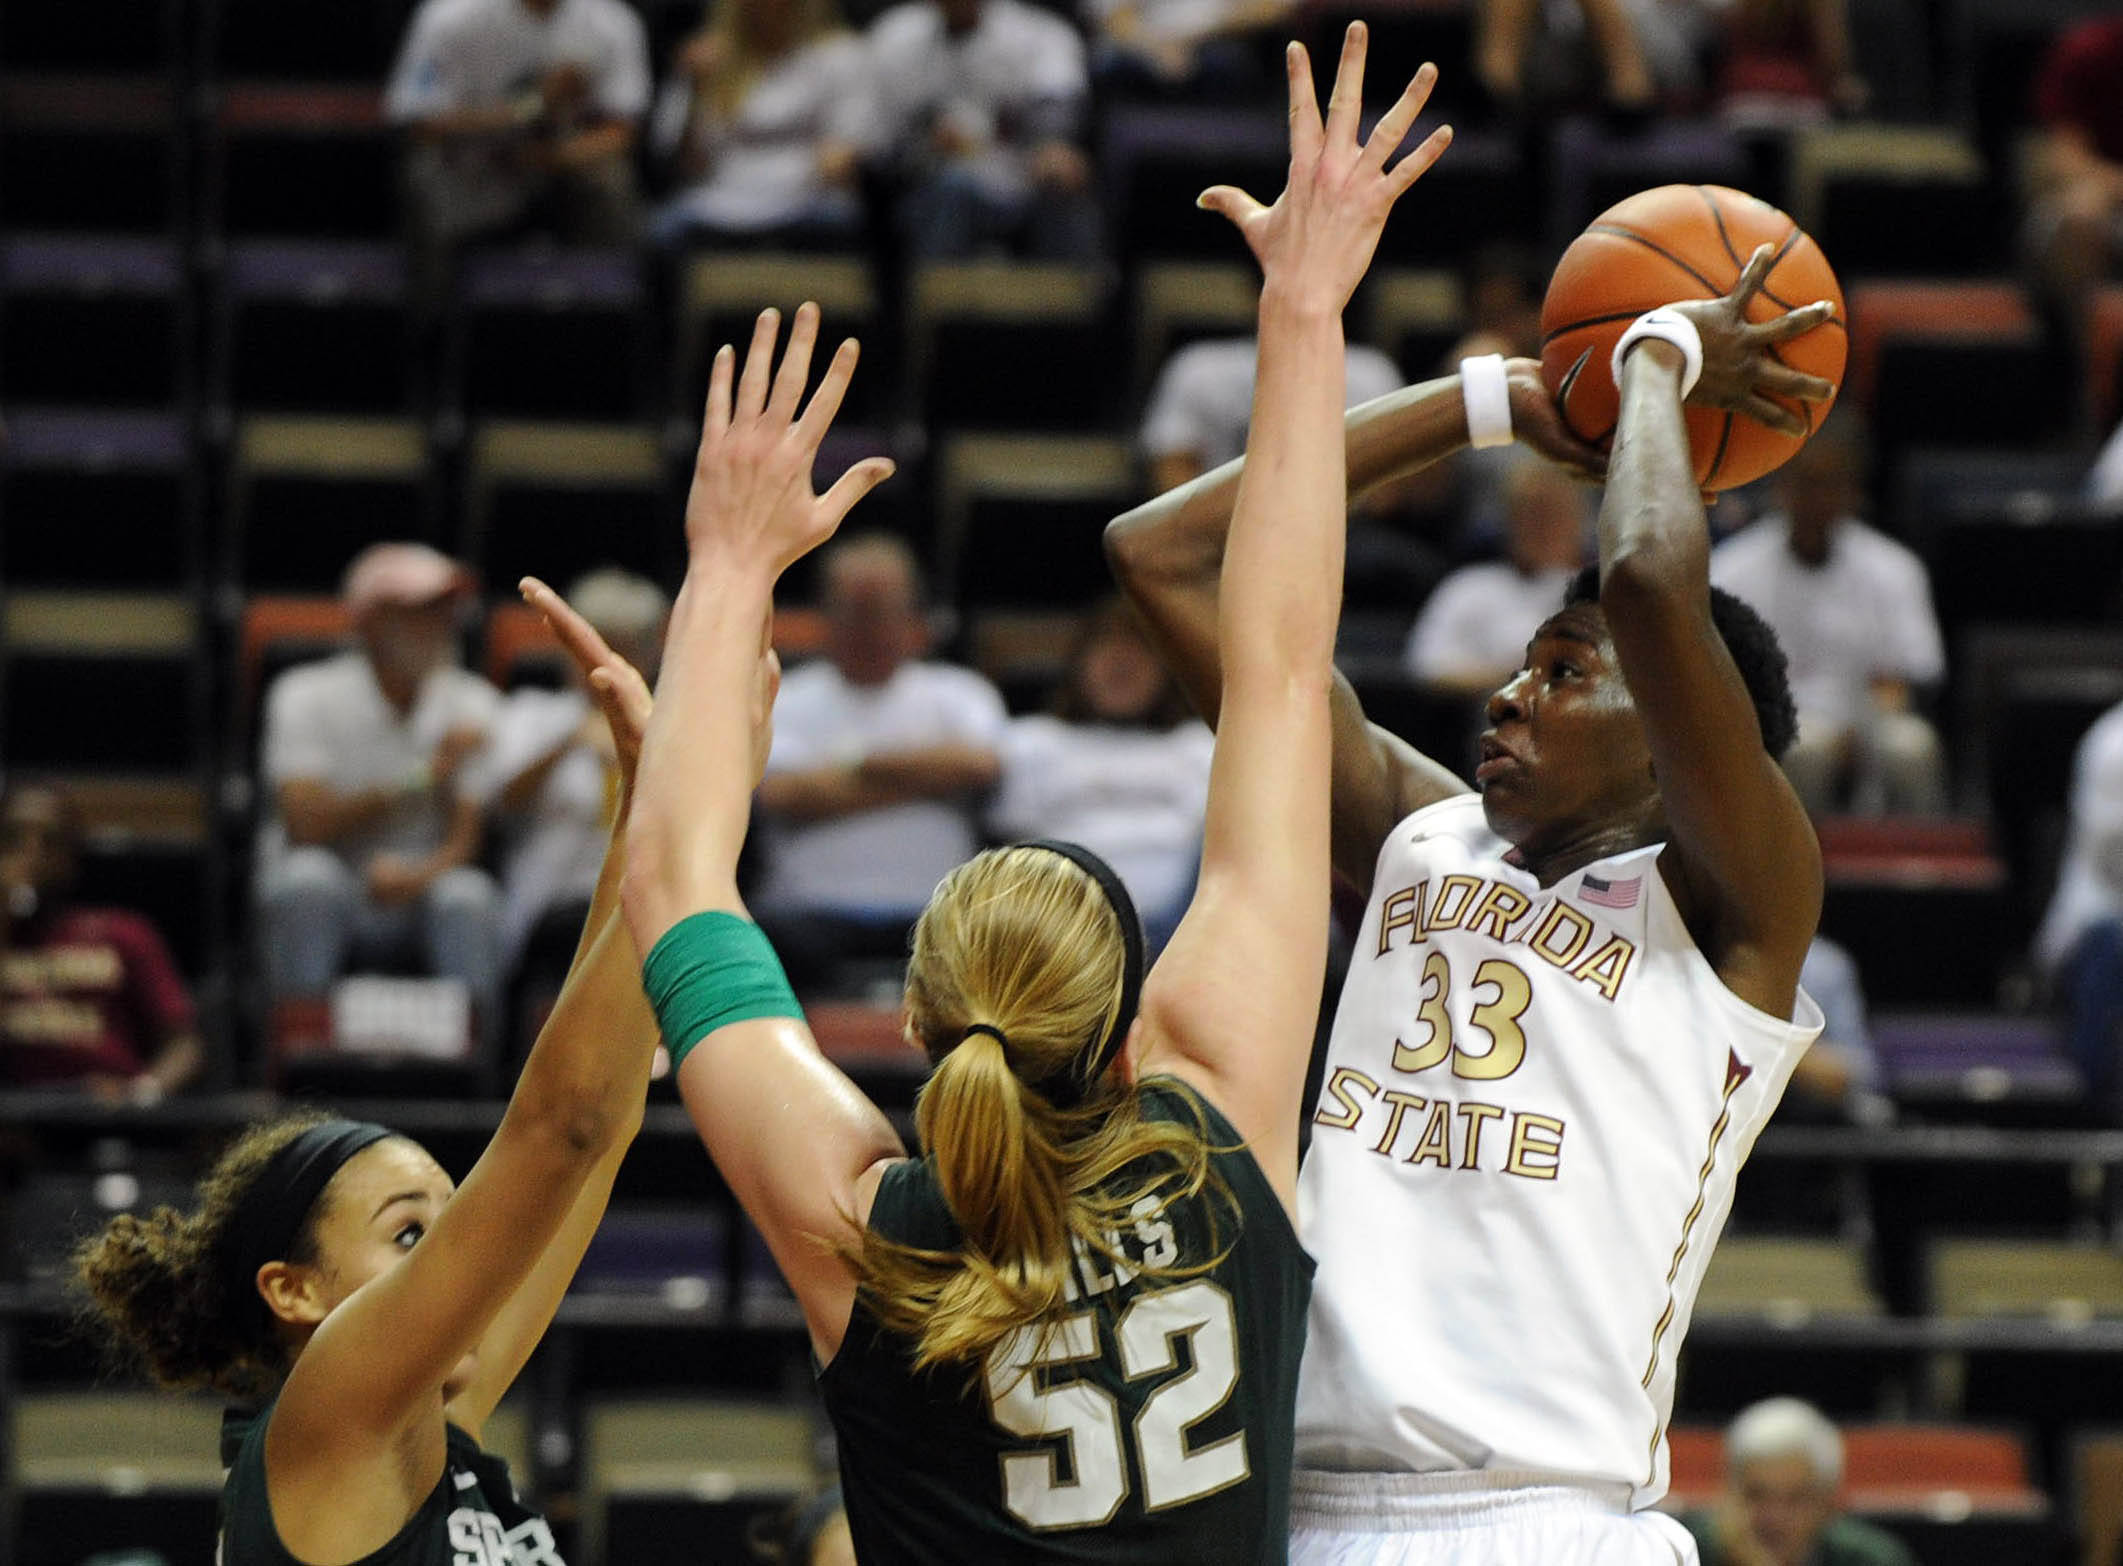 Dec 4, 2013; Tallahassee, FL, USA; Florida State Seminoles forward Natasha Howard (33) shoots over Michigan State Spartans forward Becca Mills (52)  during the game at the Donald L. Tucker Center (Tallahassee). Mandatory Credit: Melina Vastola-USA TODAY Sports